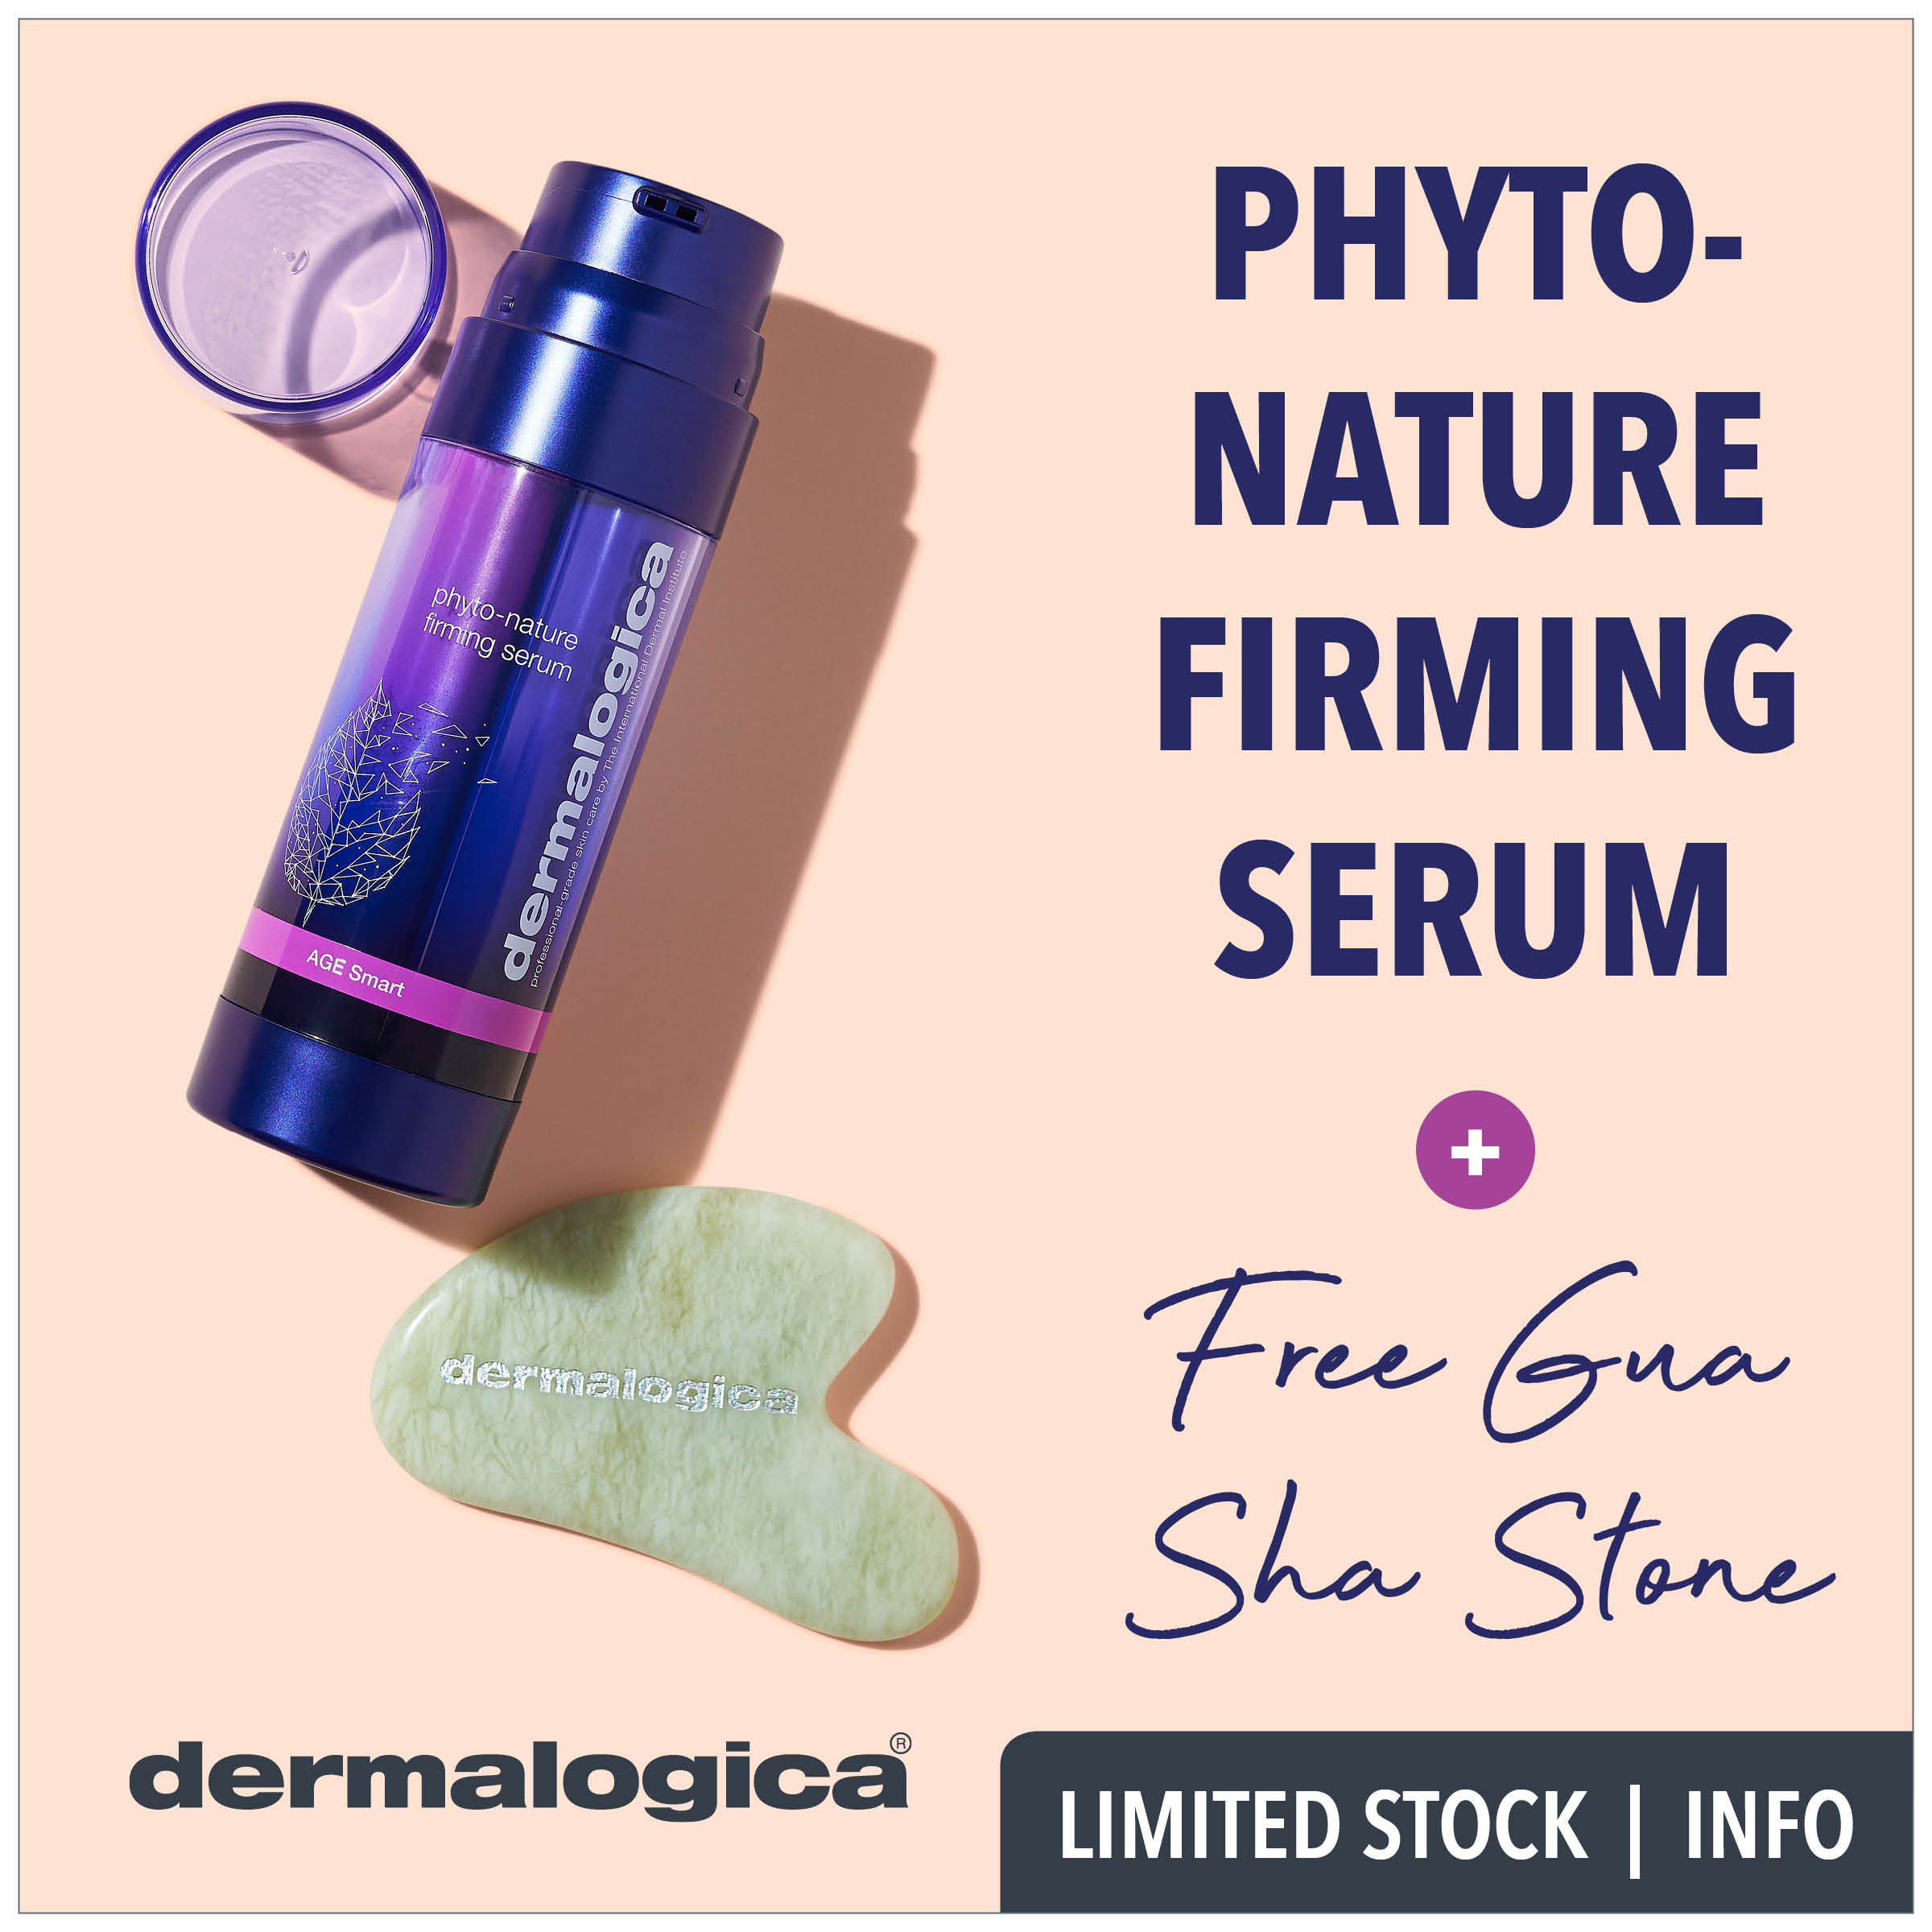 free gift with dermalogica phyto nature firming serum